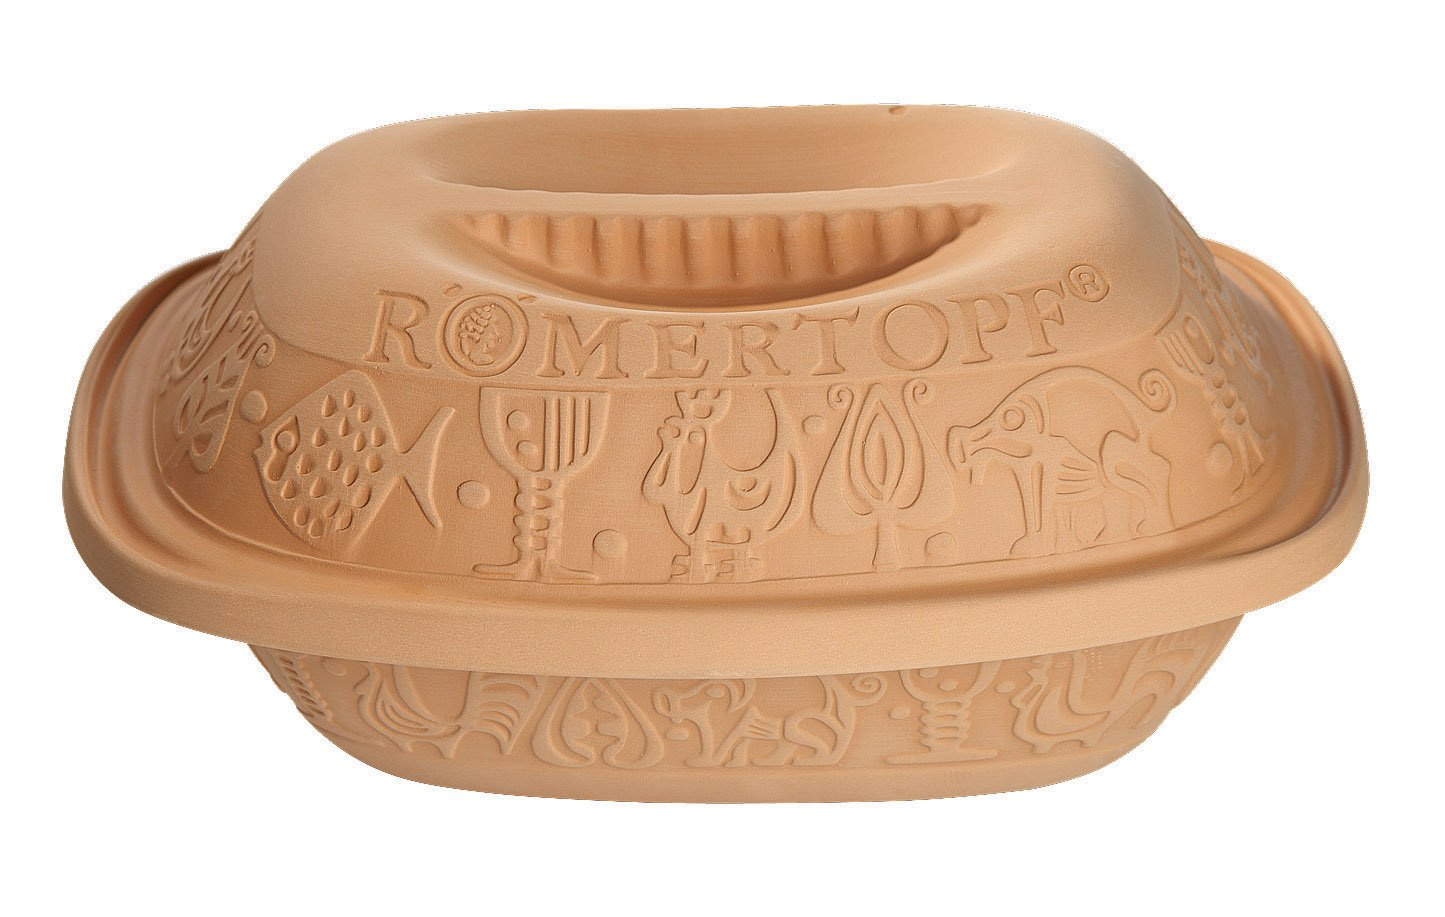 Romertopf by Reston Lloyd Classic Series Glazed Natural Clay Cooker, Medium